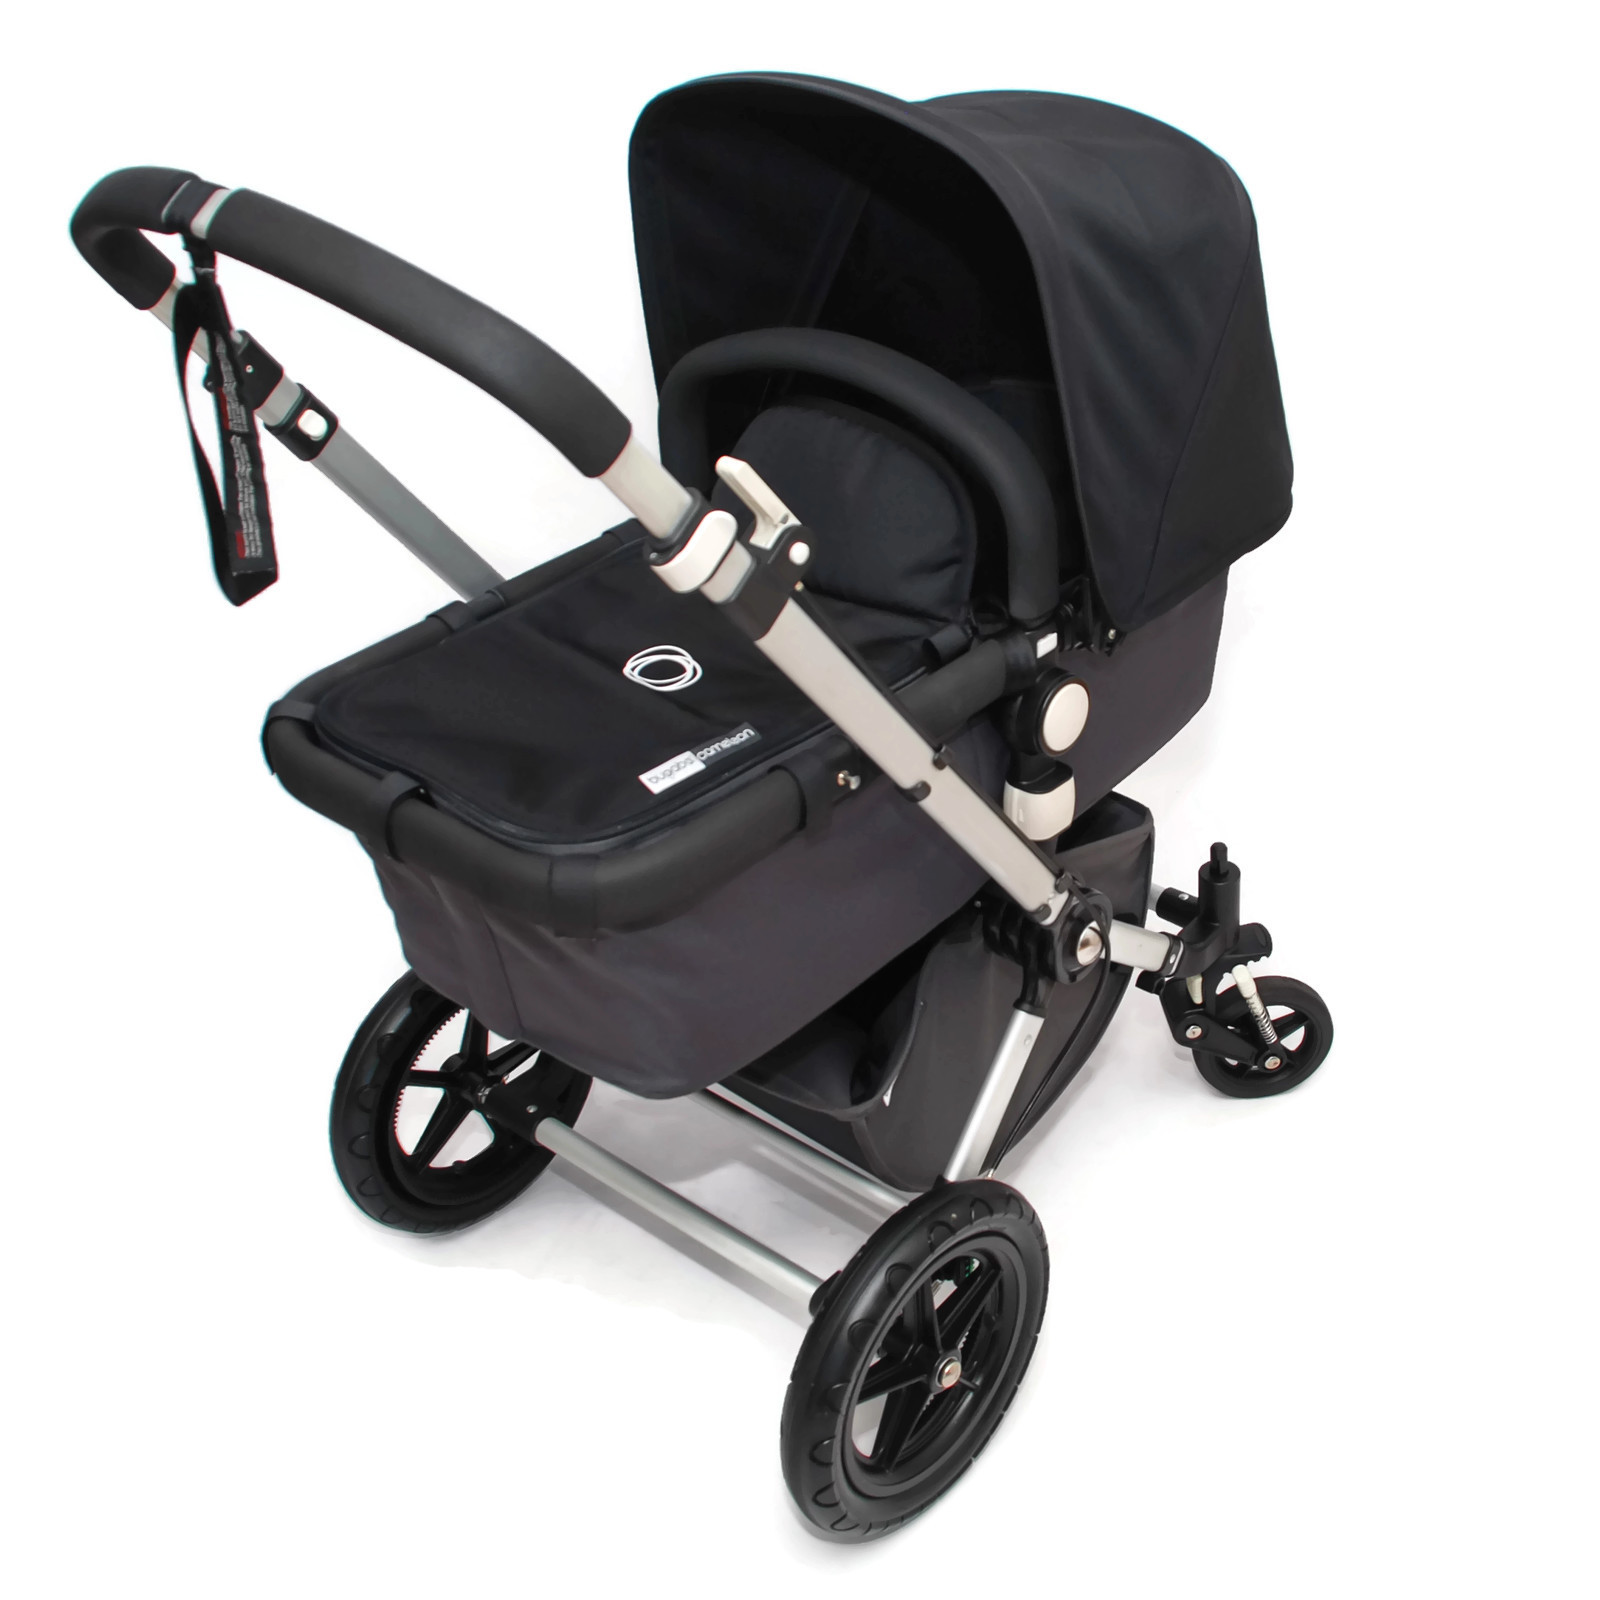 bugaboo cameleon 2 kinderwagen komplett schwarz black grau ebay. Black Bedroom Furniture Sets. Home Design Ideas